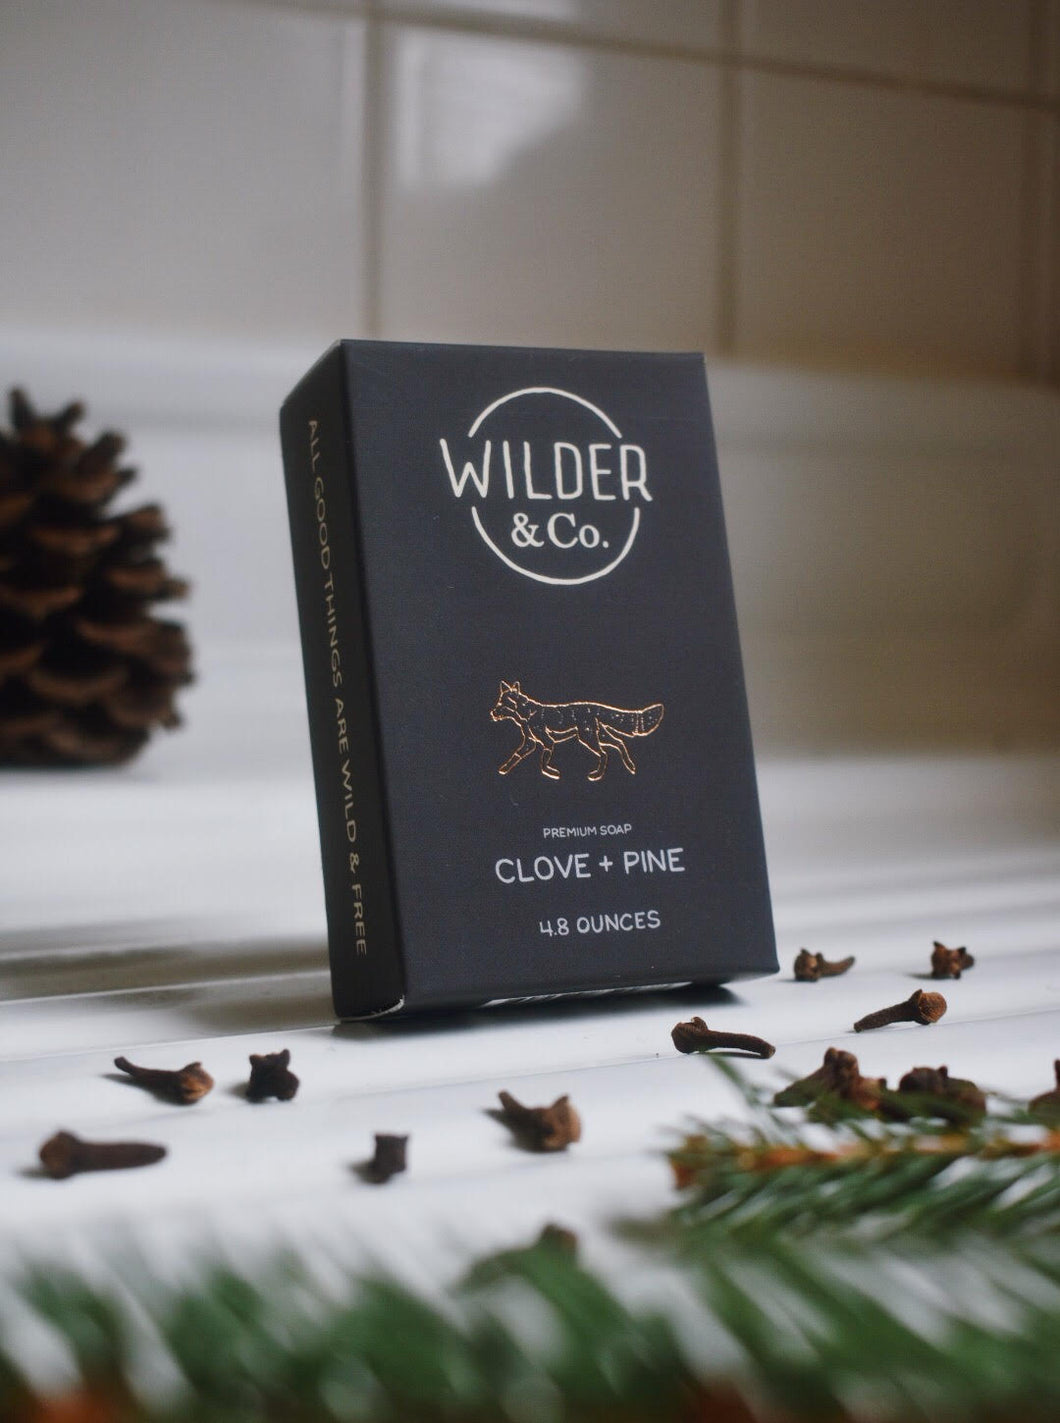 Clove + Pine Premium Bar Soap